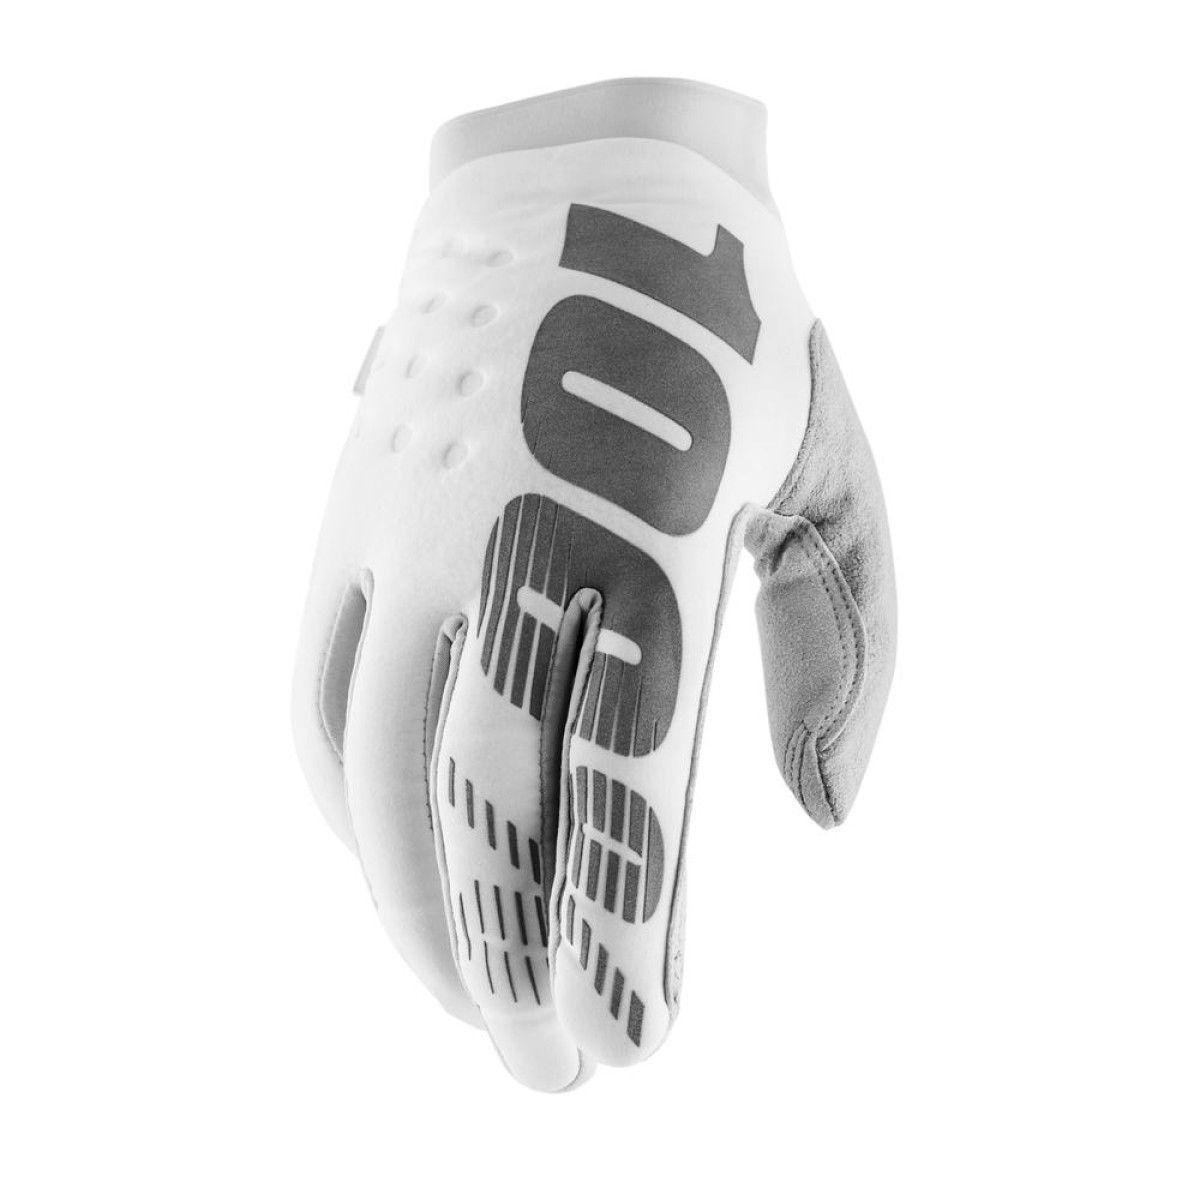 100% Brisker Cold Weather Gloves White Silver Gants d'Hiver Handschuhe Koud weer Handschoenen